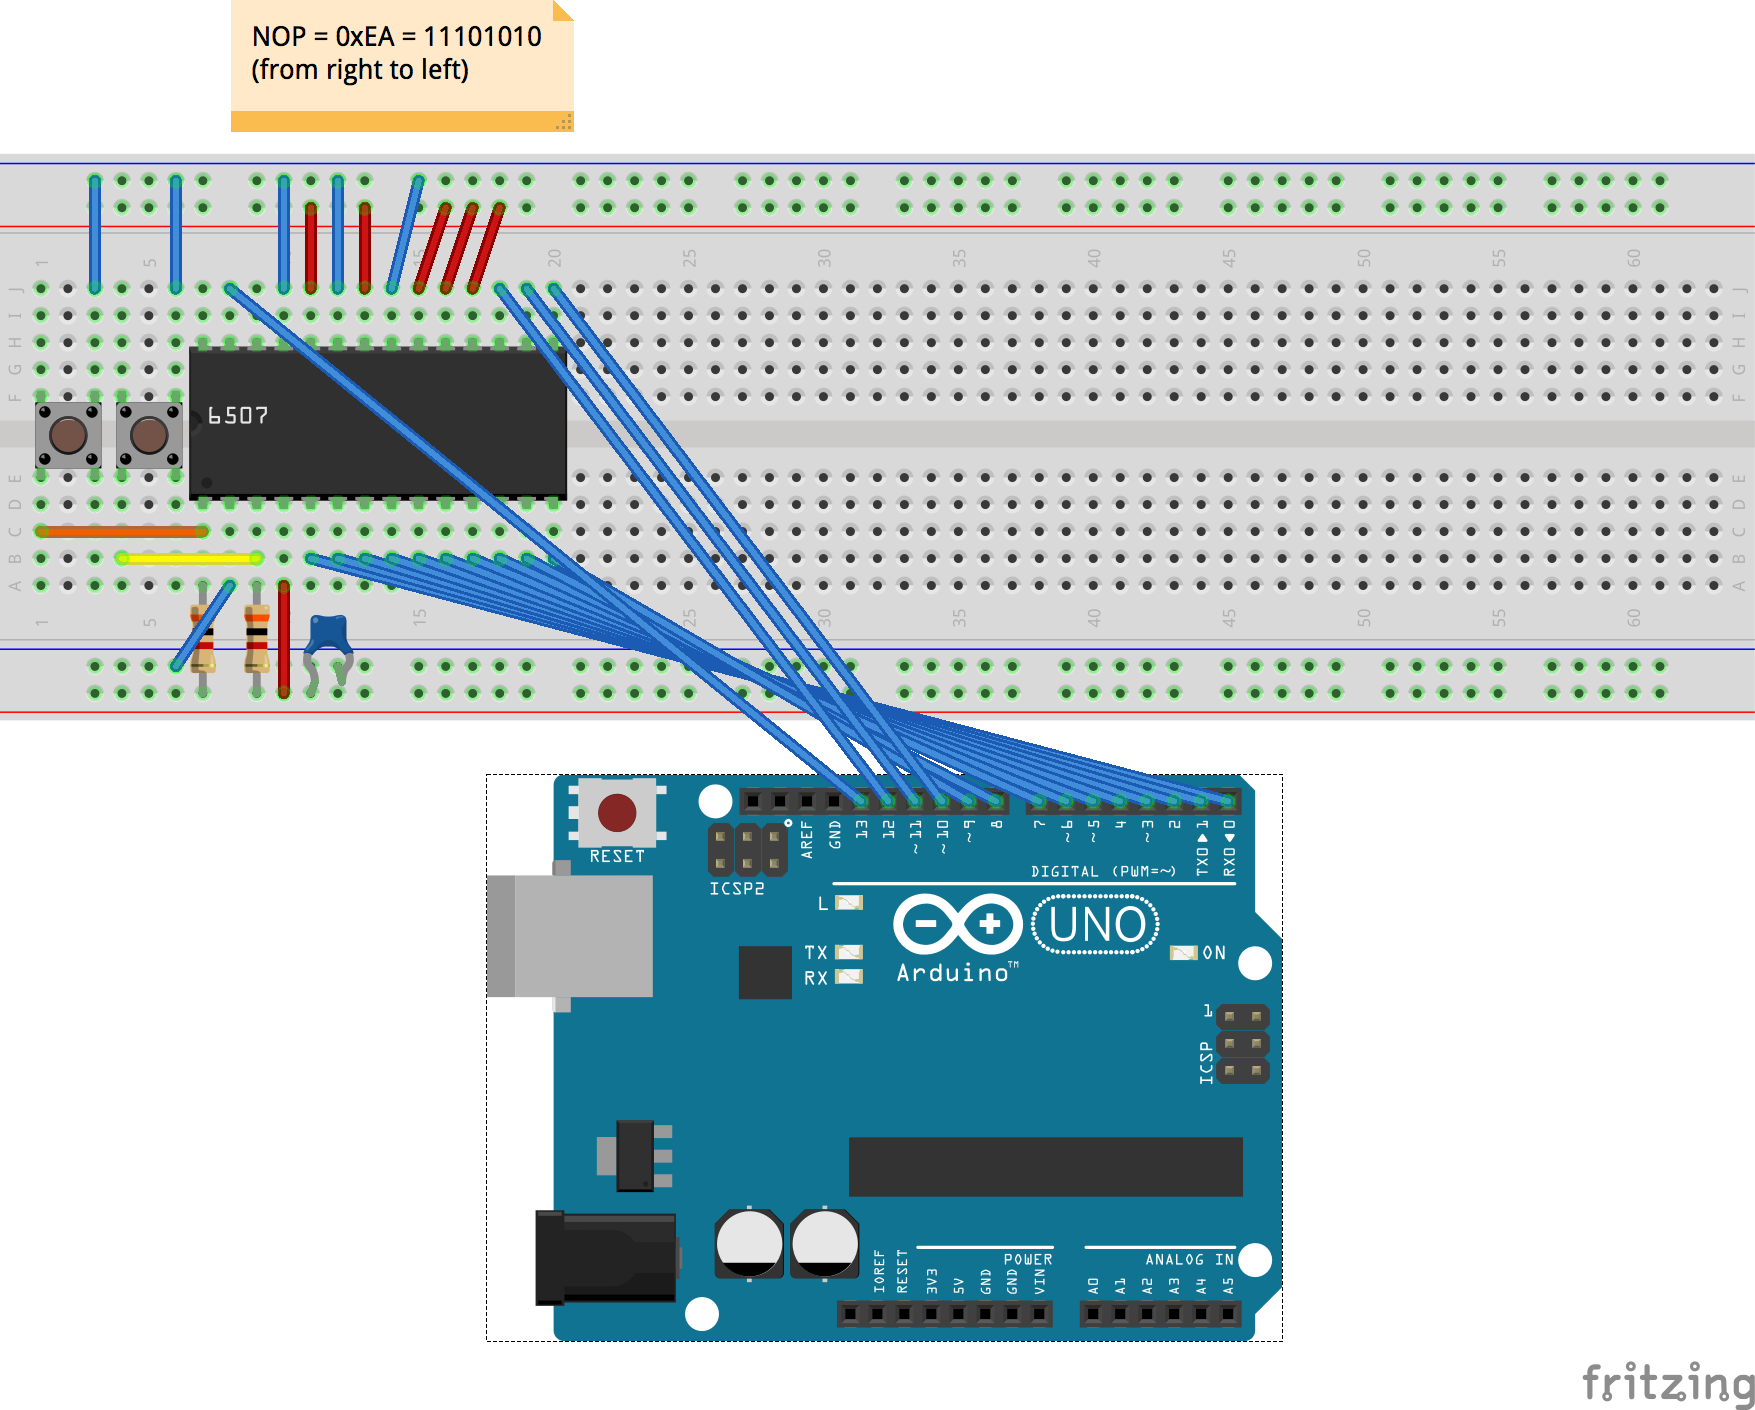 Atari 2600 Cpu Running On A Breadboard Chesters Blog Computer Ram Chips With Binary Code Circuit Board Memory From That Drawing I Rebuilt The Experiment To Weed Out Last Errors Using Shorter Pieces Of Wire Except For Nop And Arduino Connection